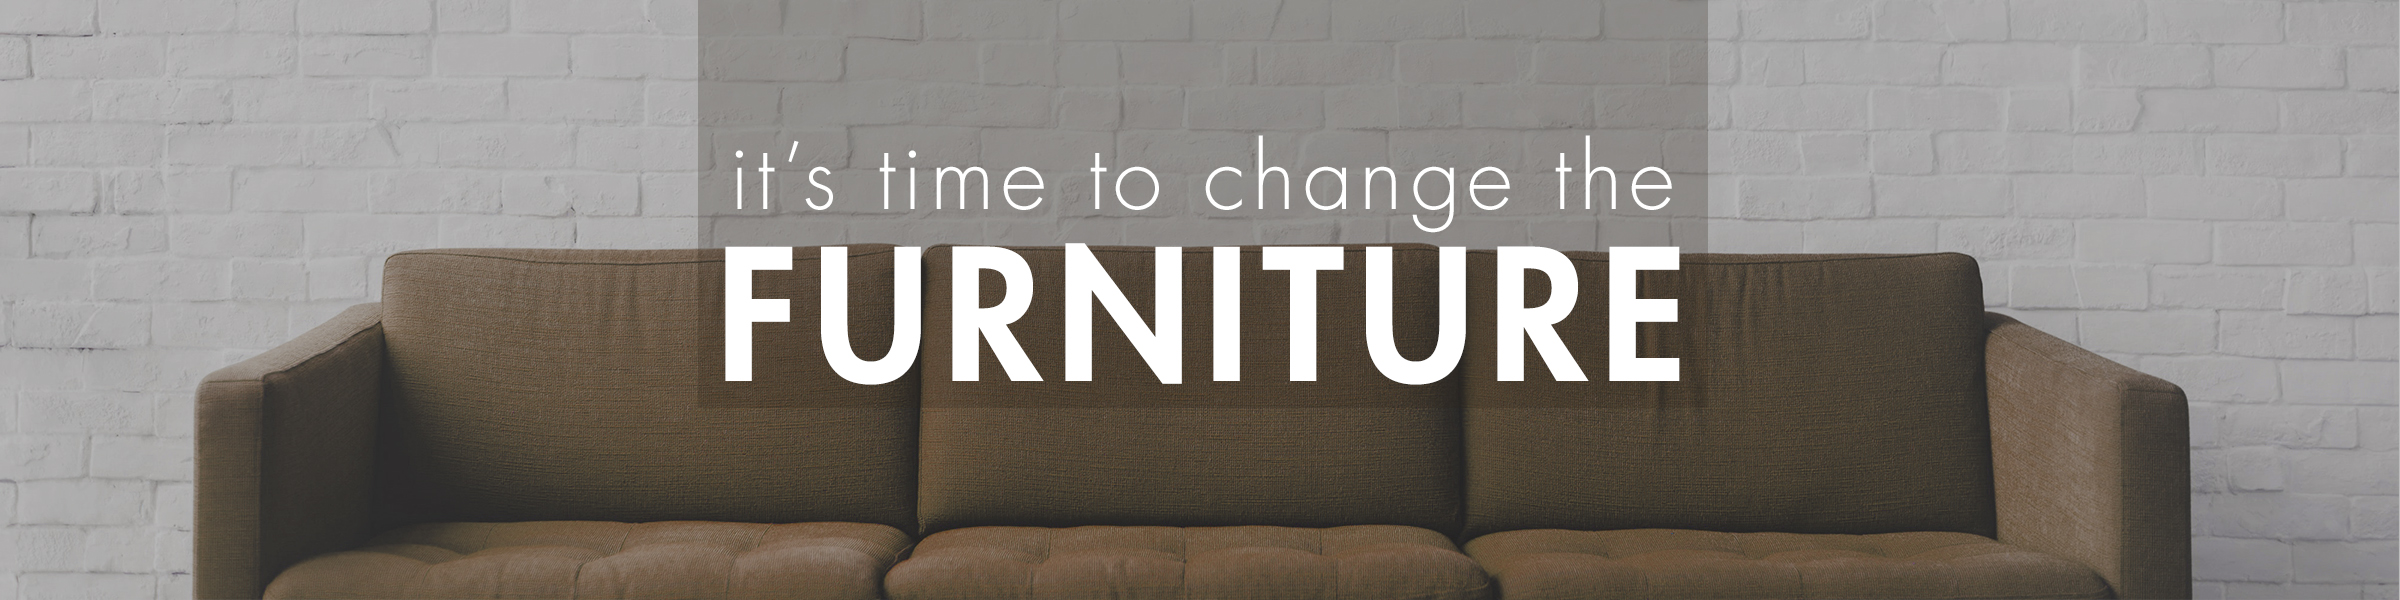 Furniture title slide.jpg